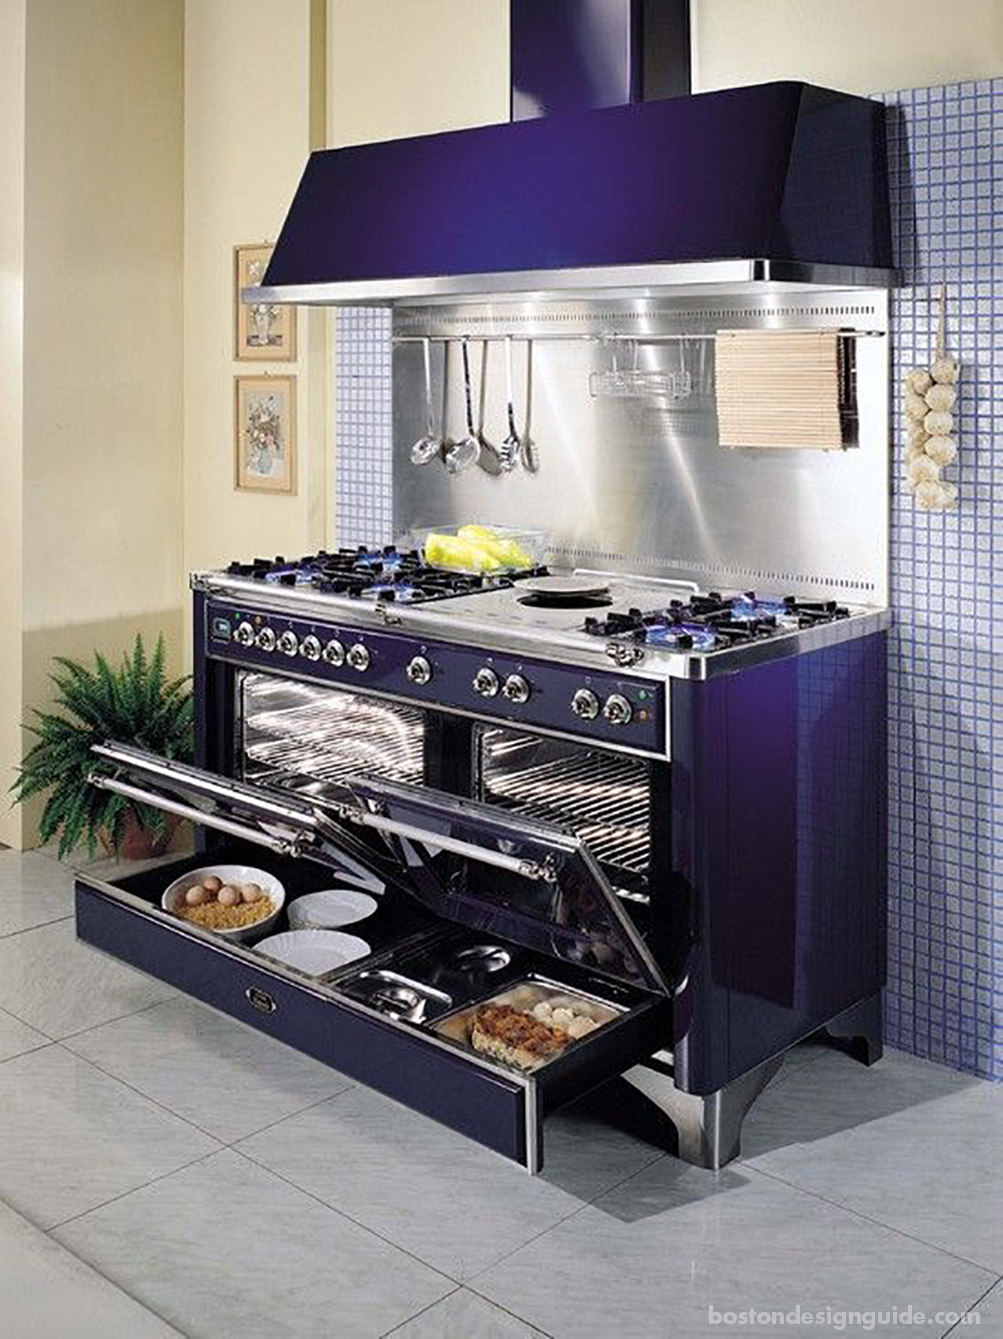 high-end oven and range